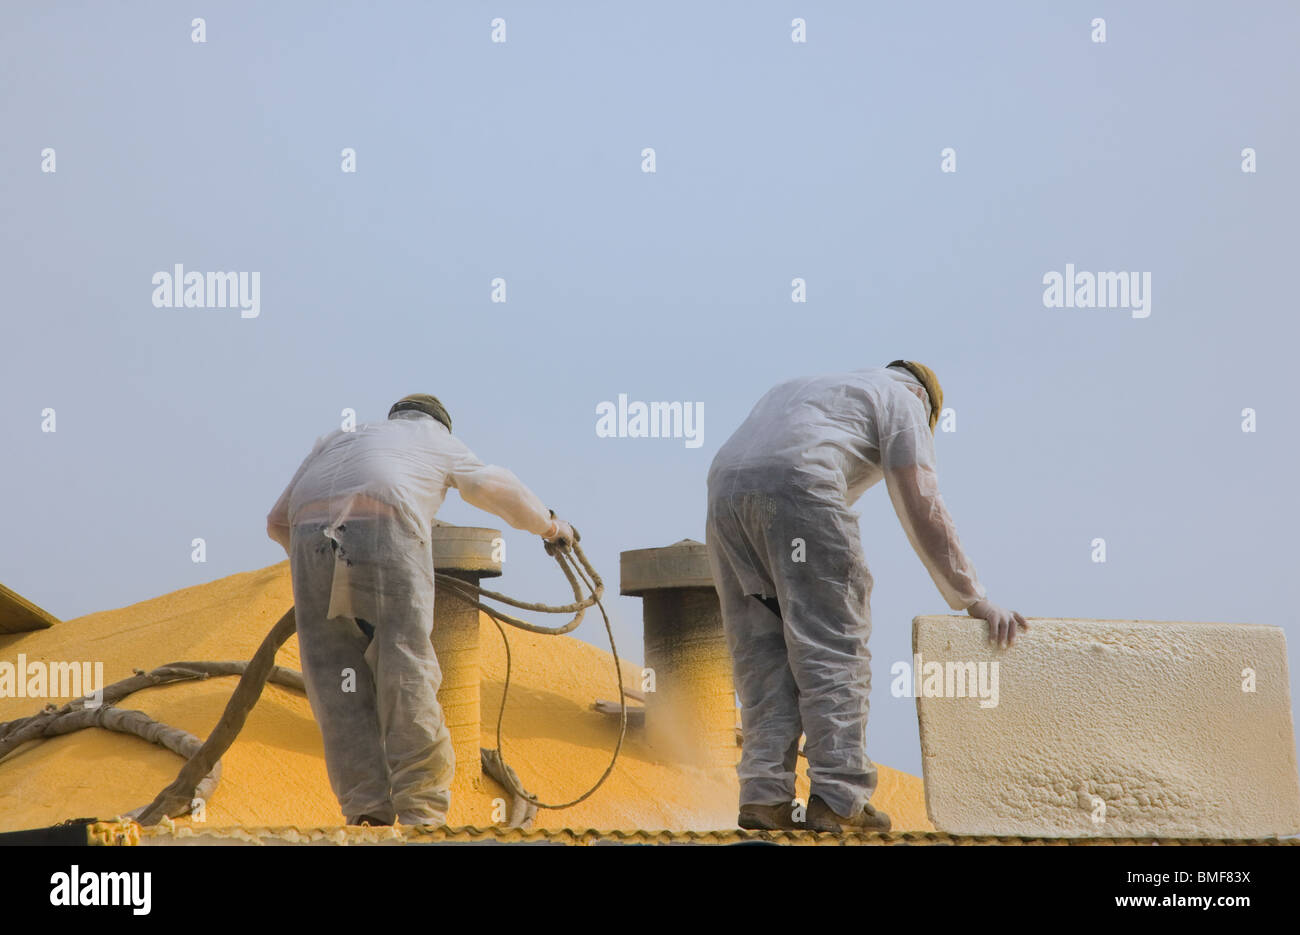 Workmen spray painting the roof of a building with yellow paint. - Stock Image